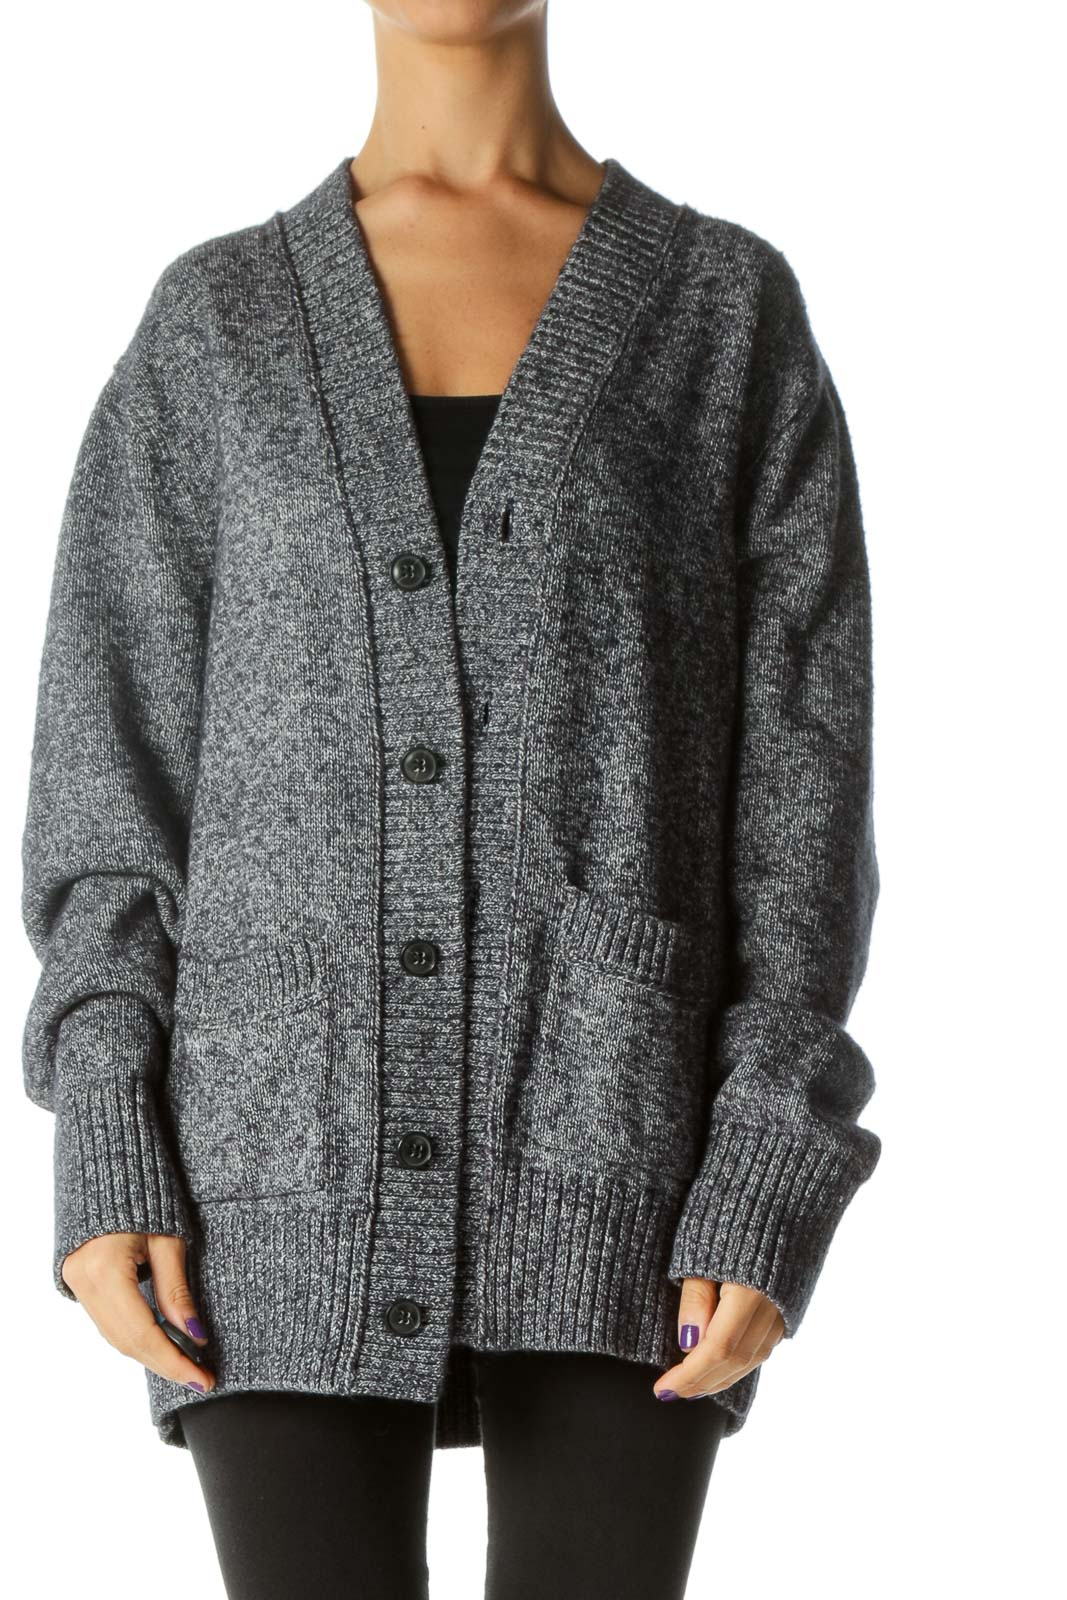 Blue White Buttoned Pocketed Knit Thick Cardigan Front